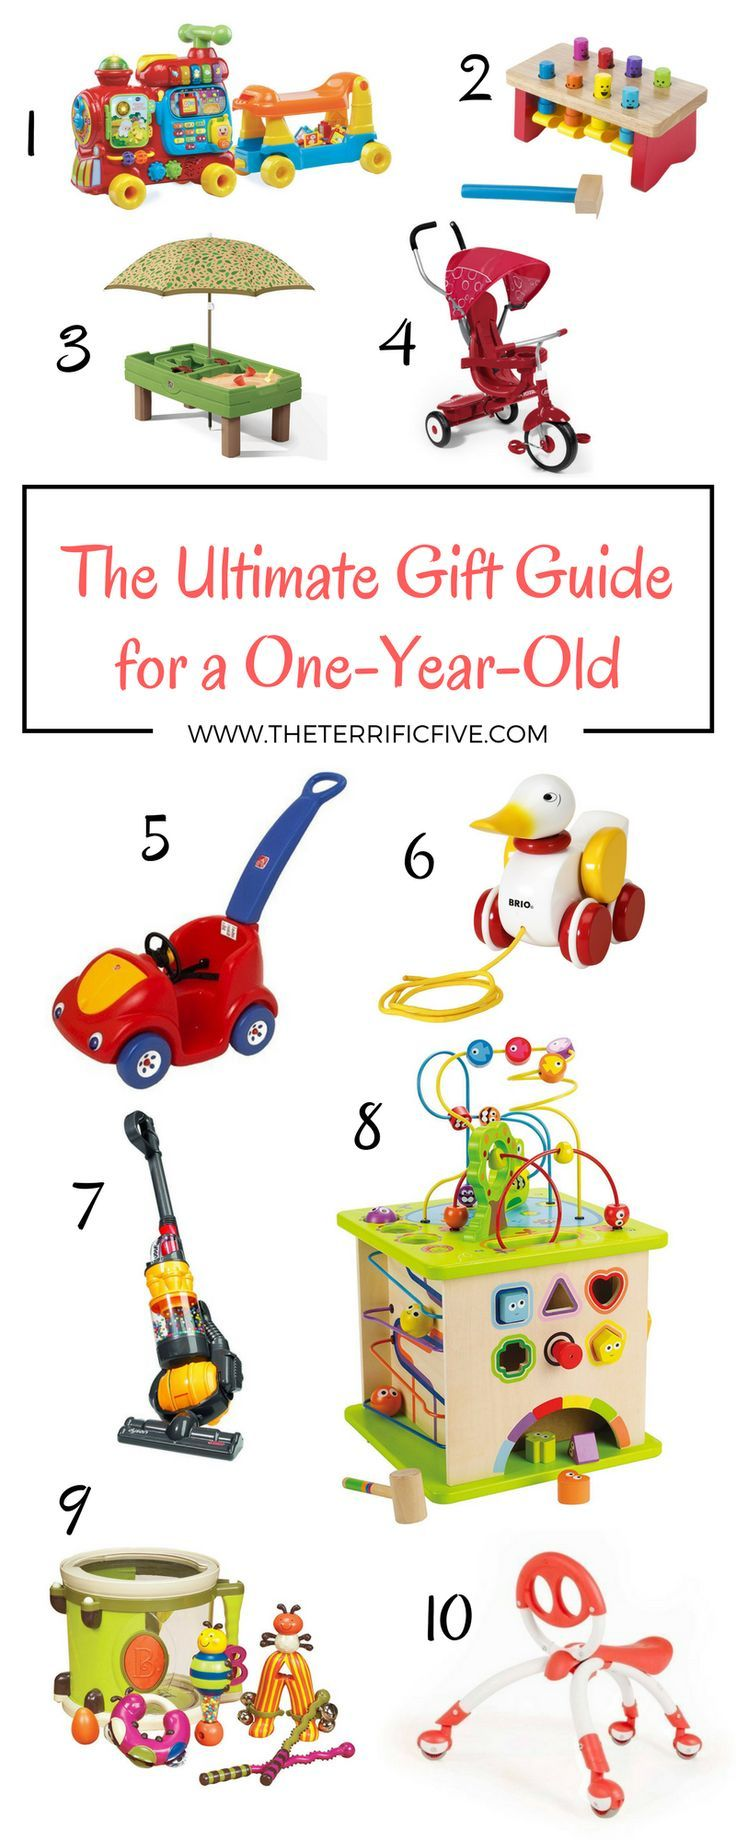 The Ultimate Gift Guide for a One-Year-Old: Tired of buying toys that your kids barely touch? Not sure what toys to bring to a baby's birthday party? Here are the top toys for one-year-old babies, tried and true by my own two kids! www.theterrificfive.com